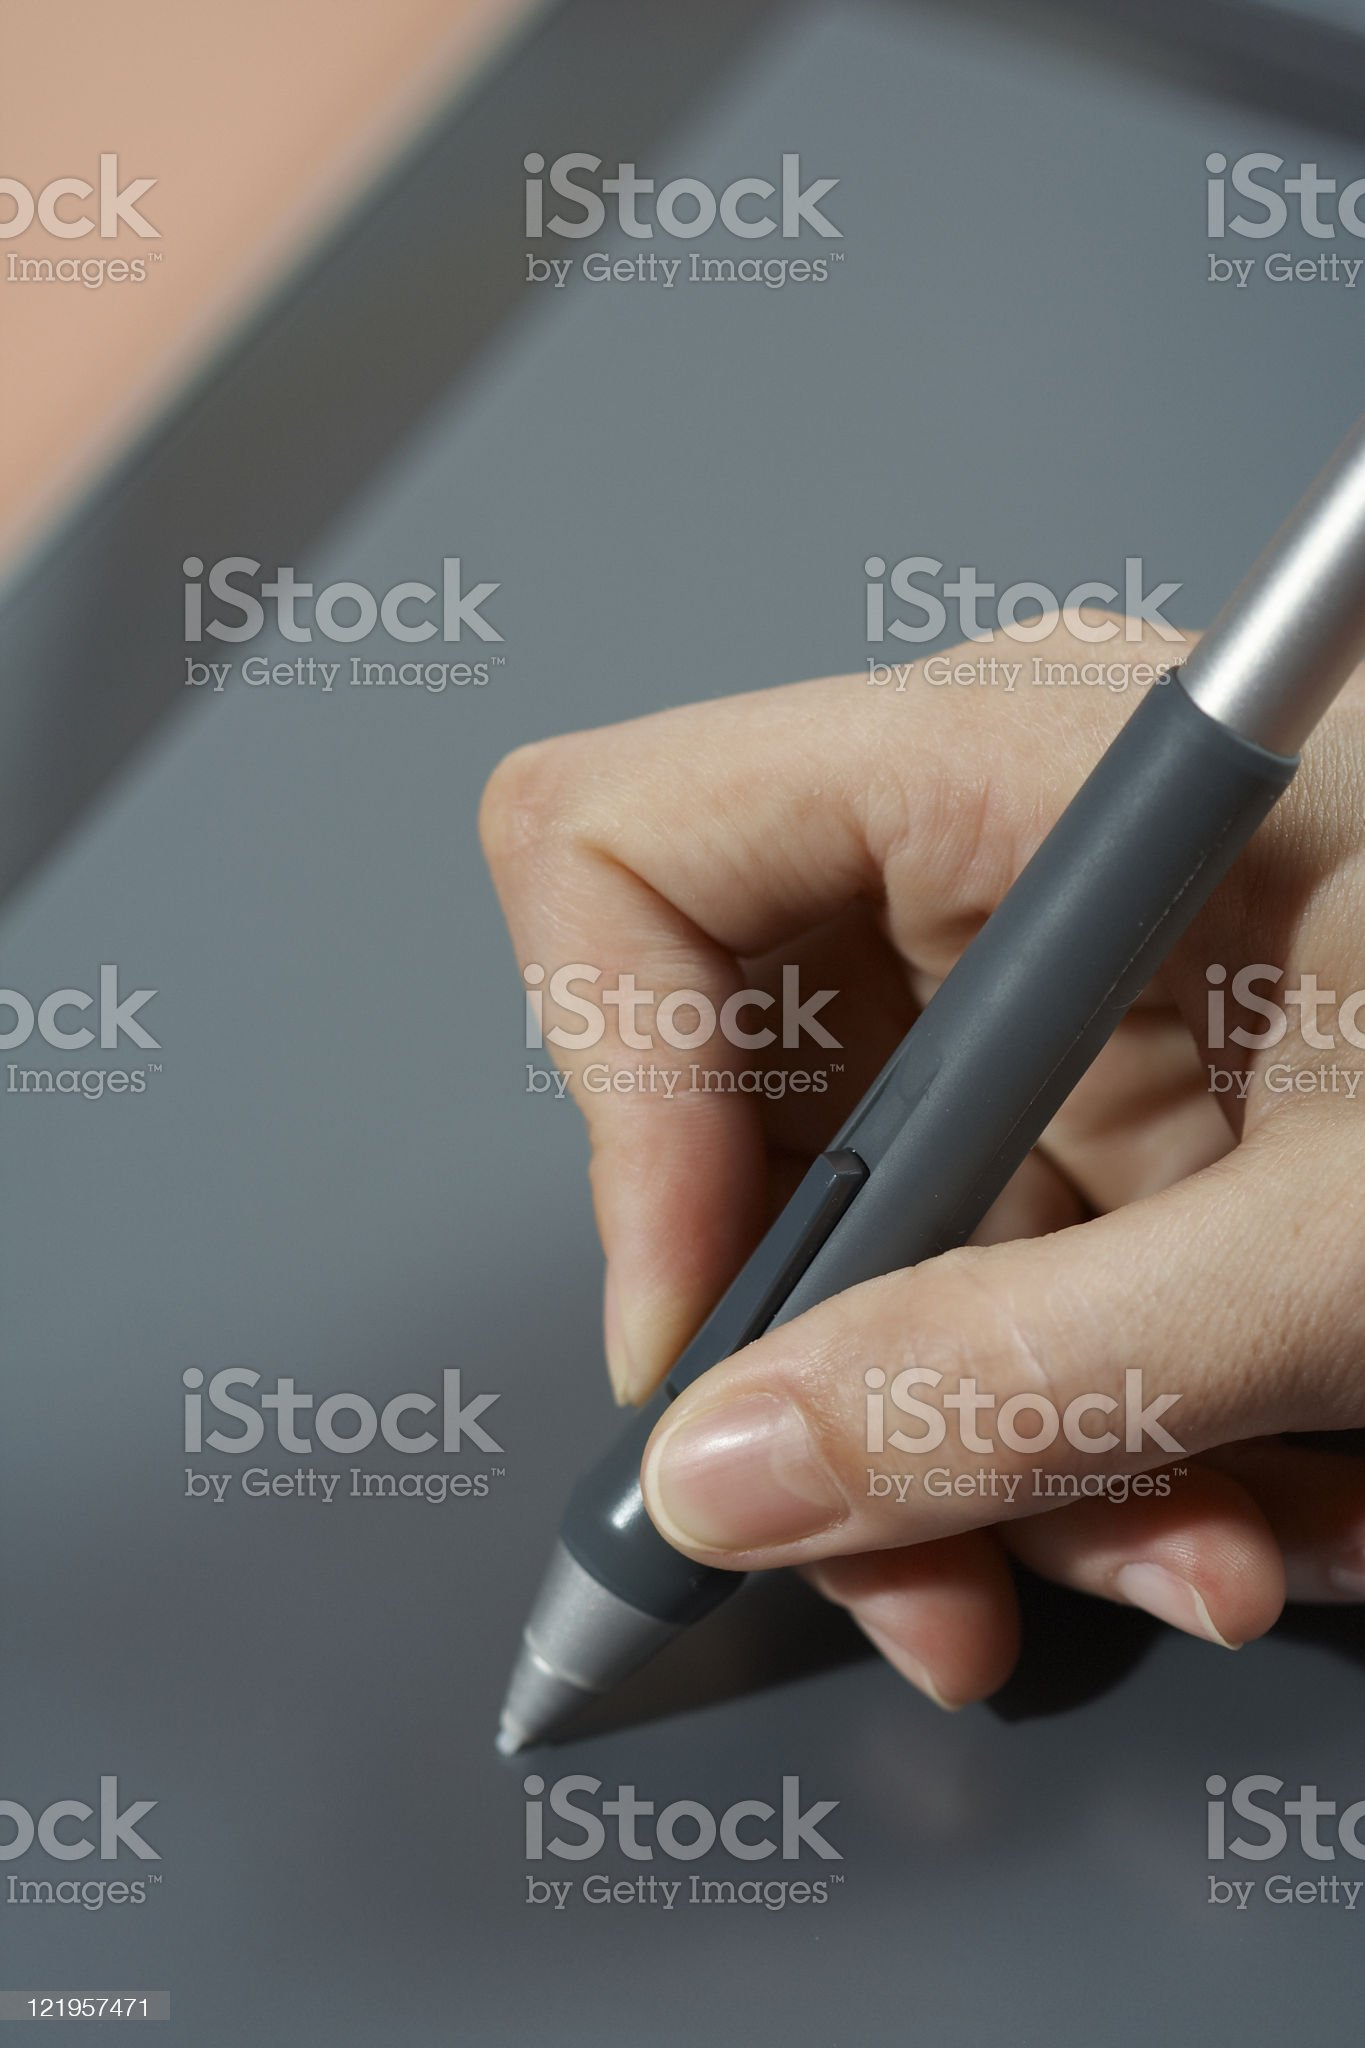 Graphic tablet. royalty-free stock photo